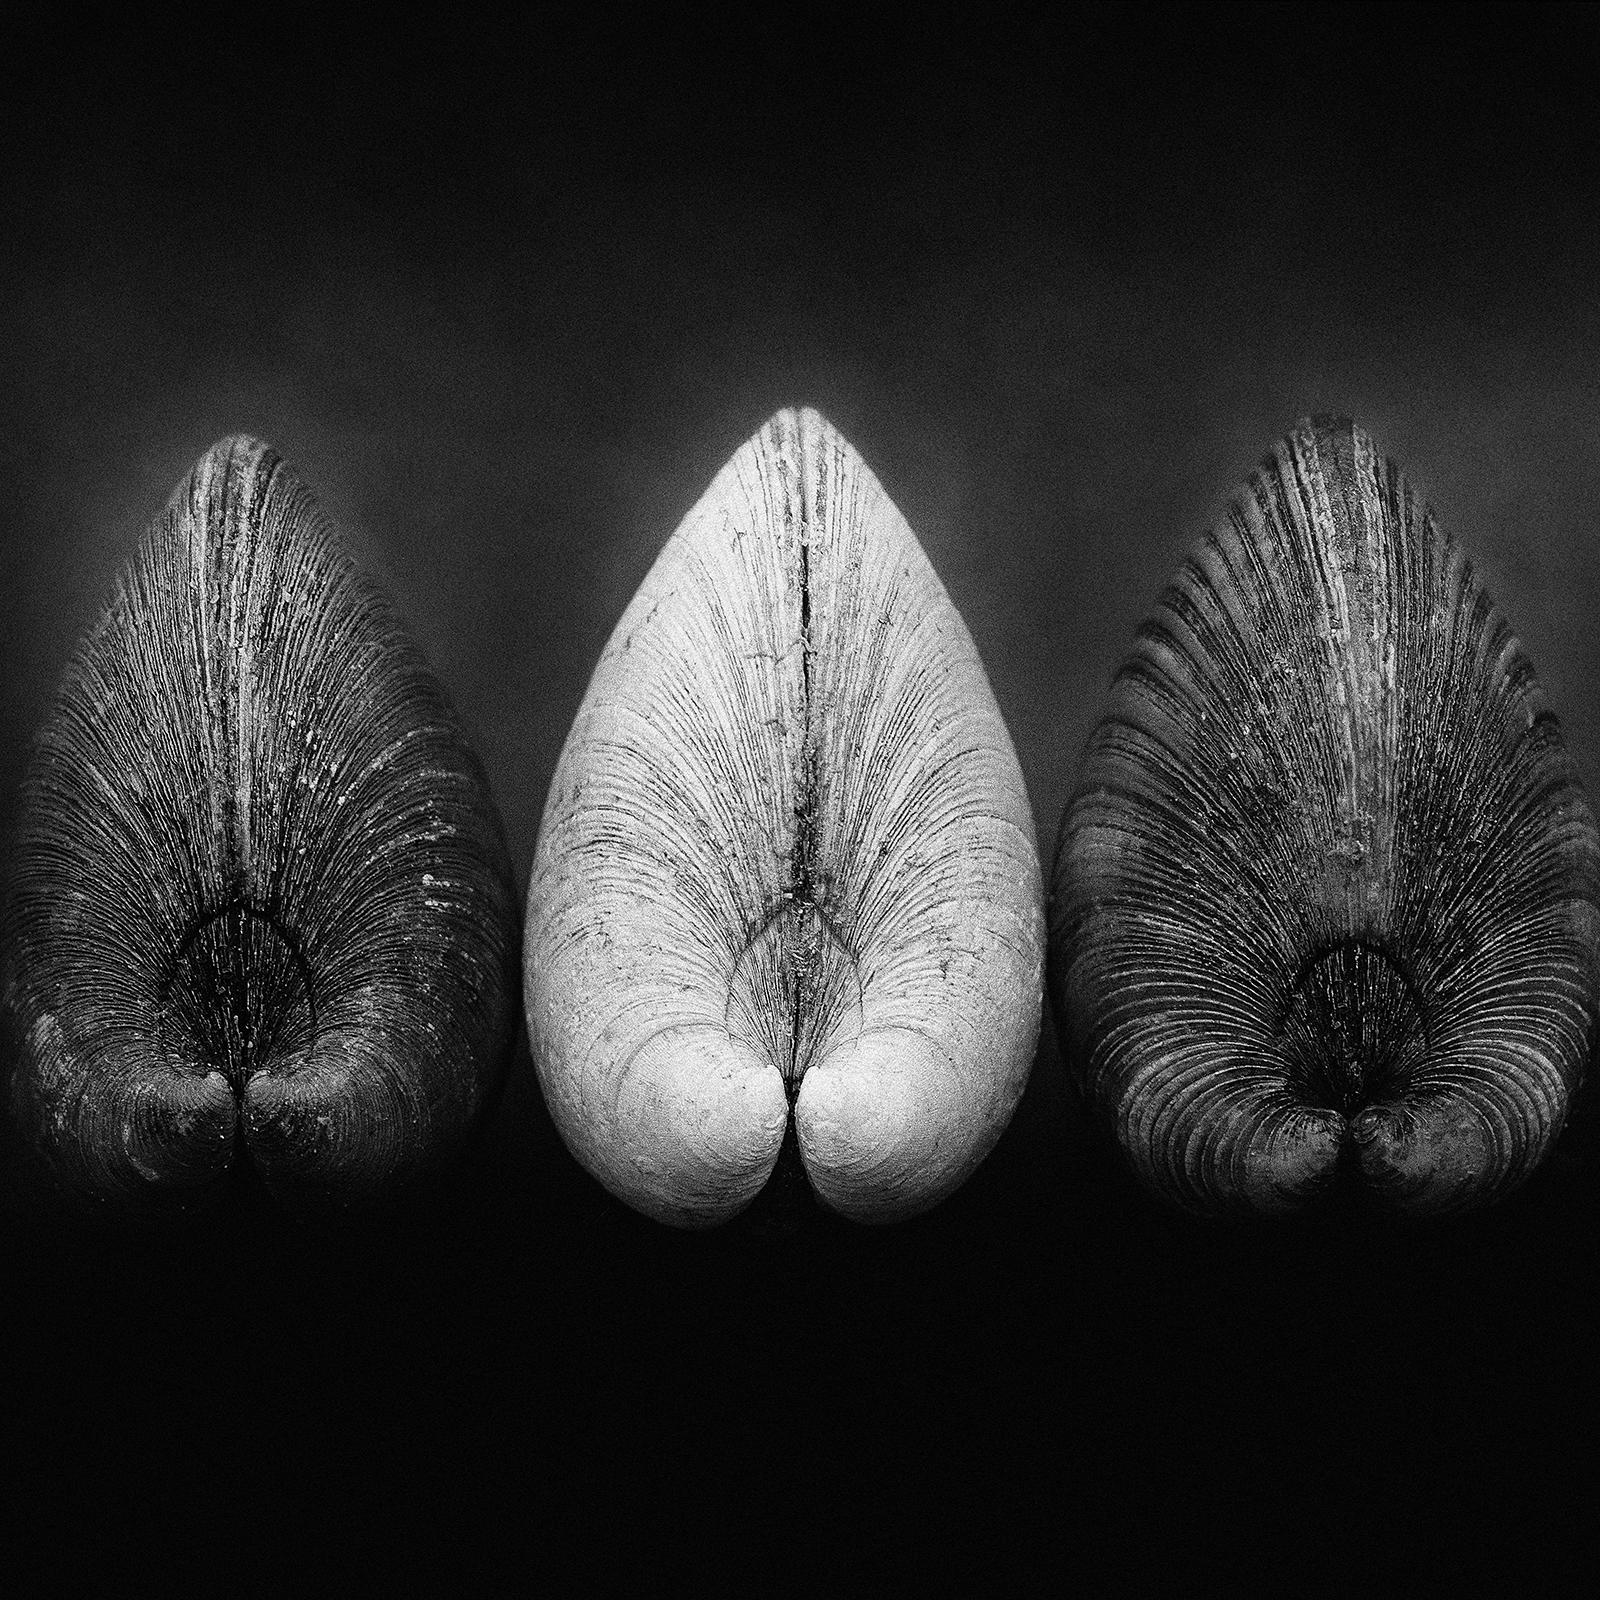 Clams-Signed limited edition fine art print,Black and white Photo, Analog,Square